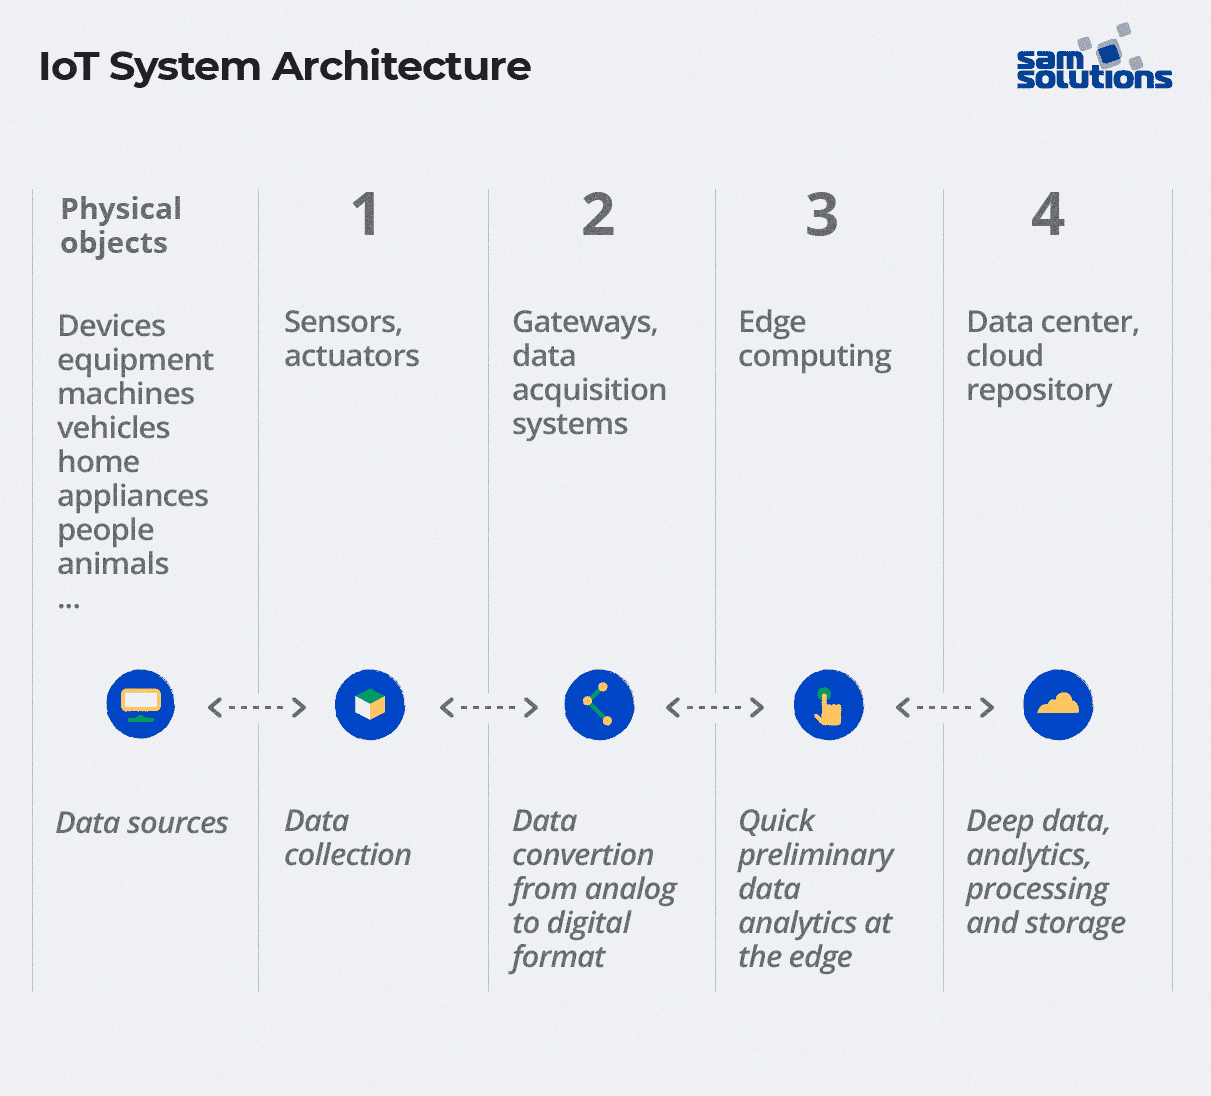 Architecture of IoT systems